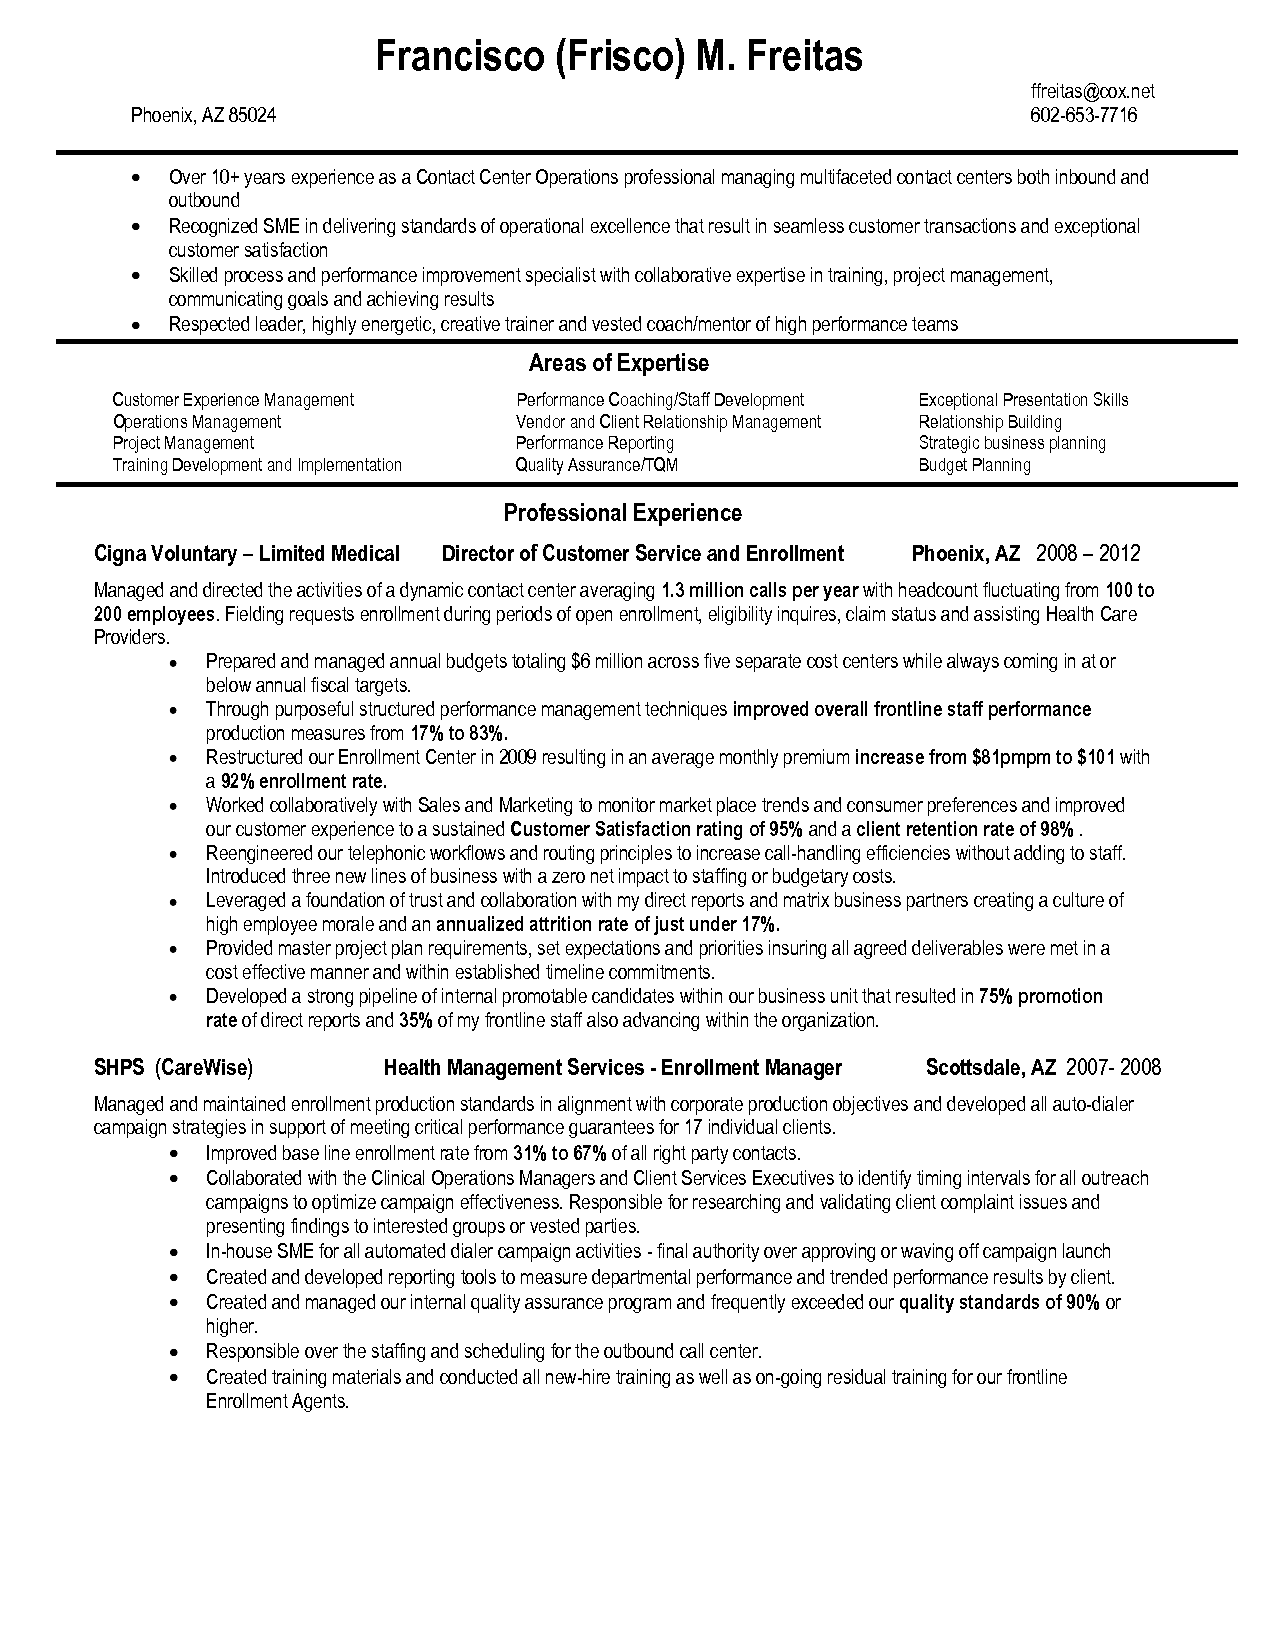 Resume Skills For Call Center Agent Resume wallpaper call center customer service representative resume insurance claims sample httpwww career summary for center